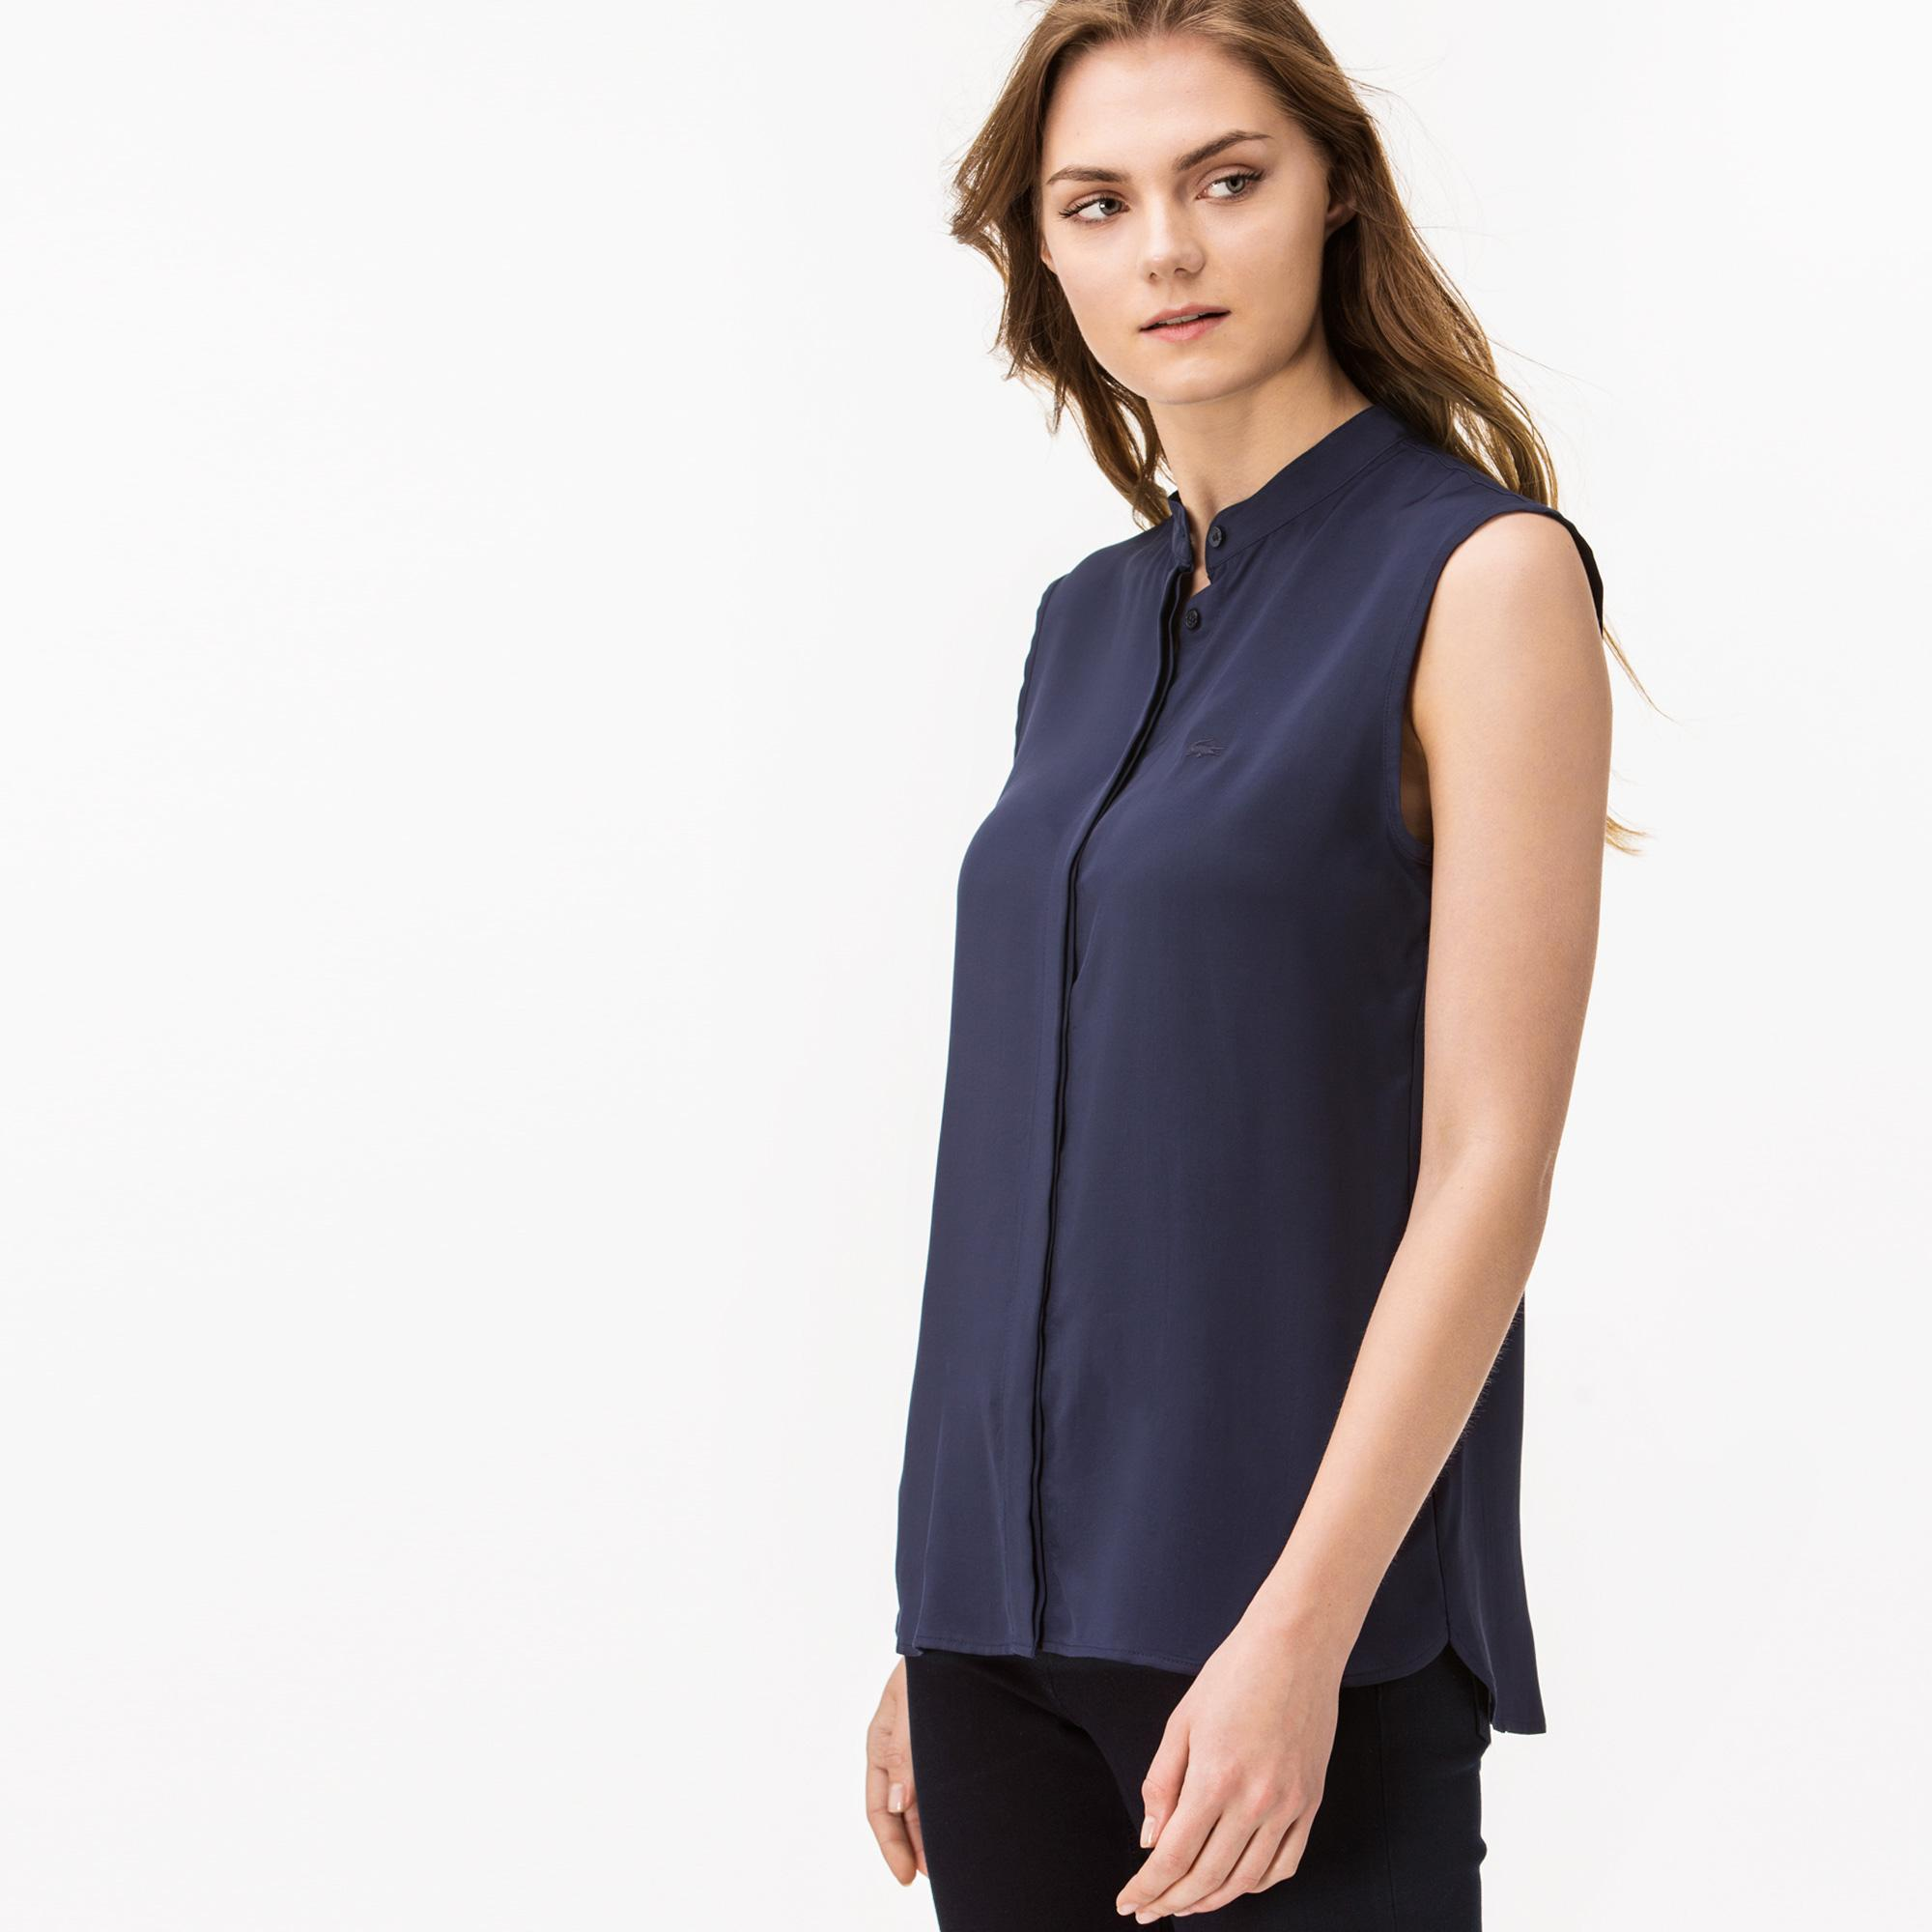 Lacoste Women's Blouse